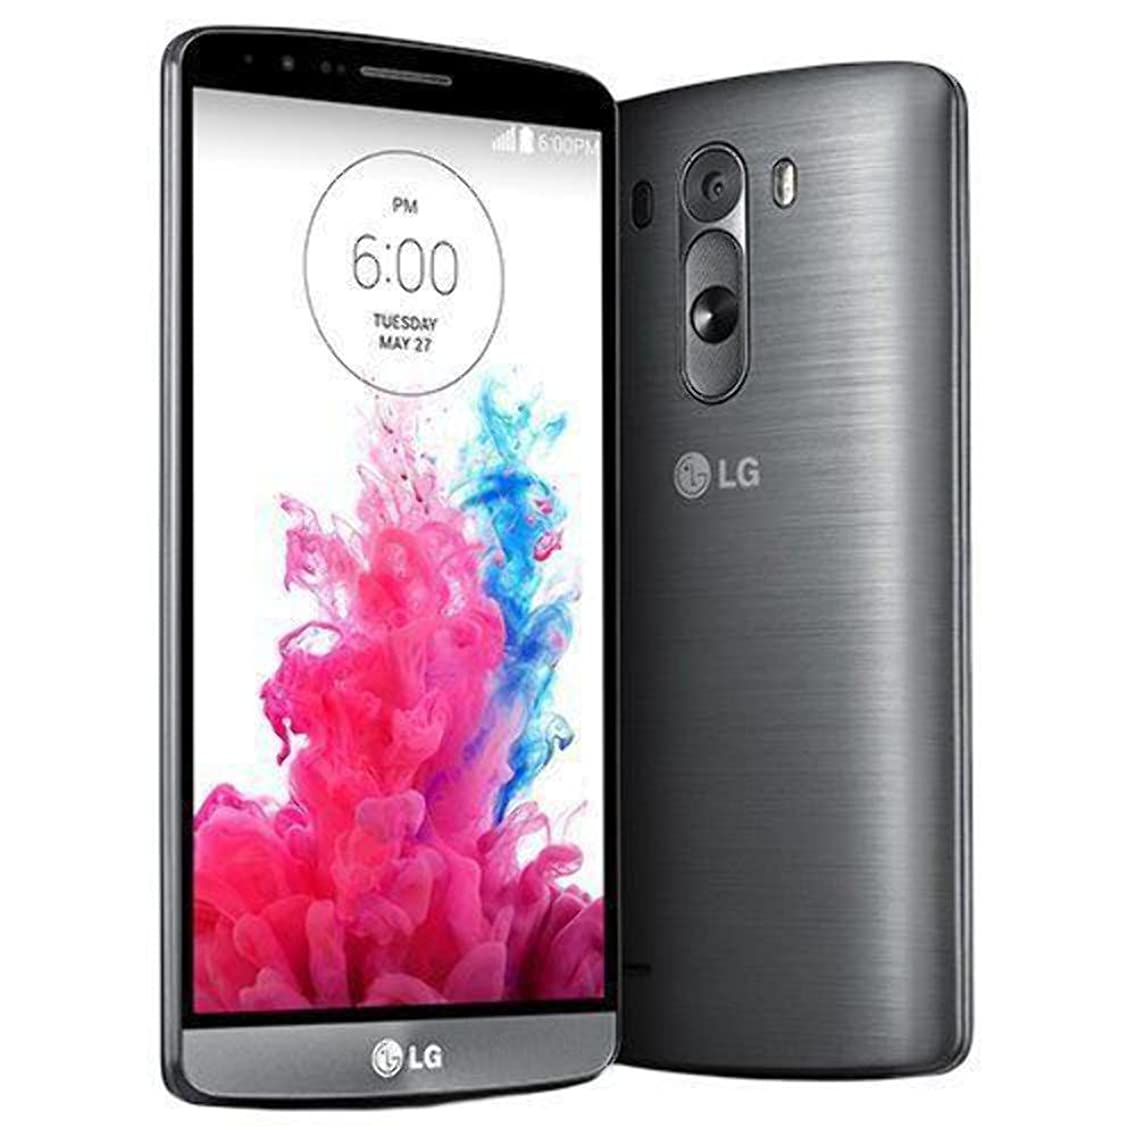 LG G3 D855 16GB Metallic Black Factory Unlocked 4G 3G 2G 2G GSM 850/900/1800/1900 bzmjcsw88